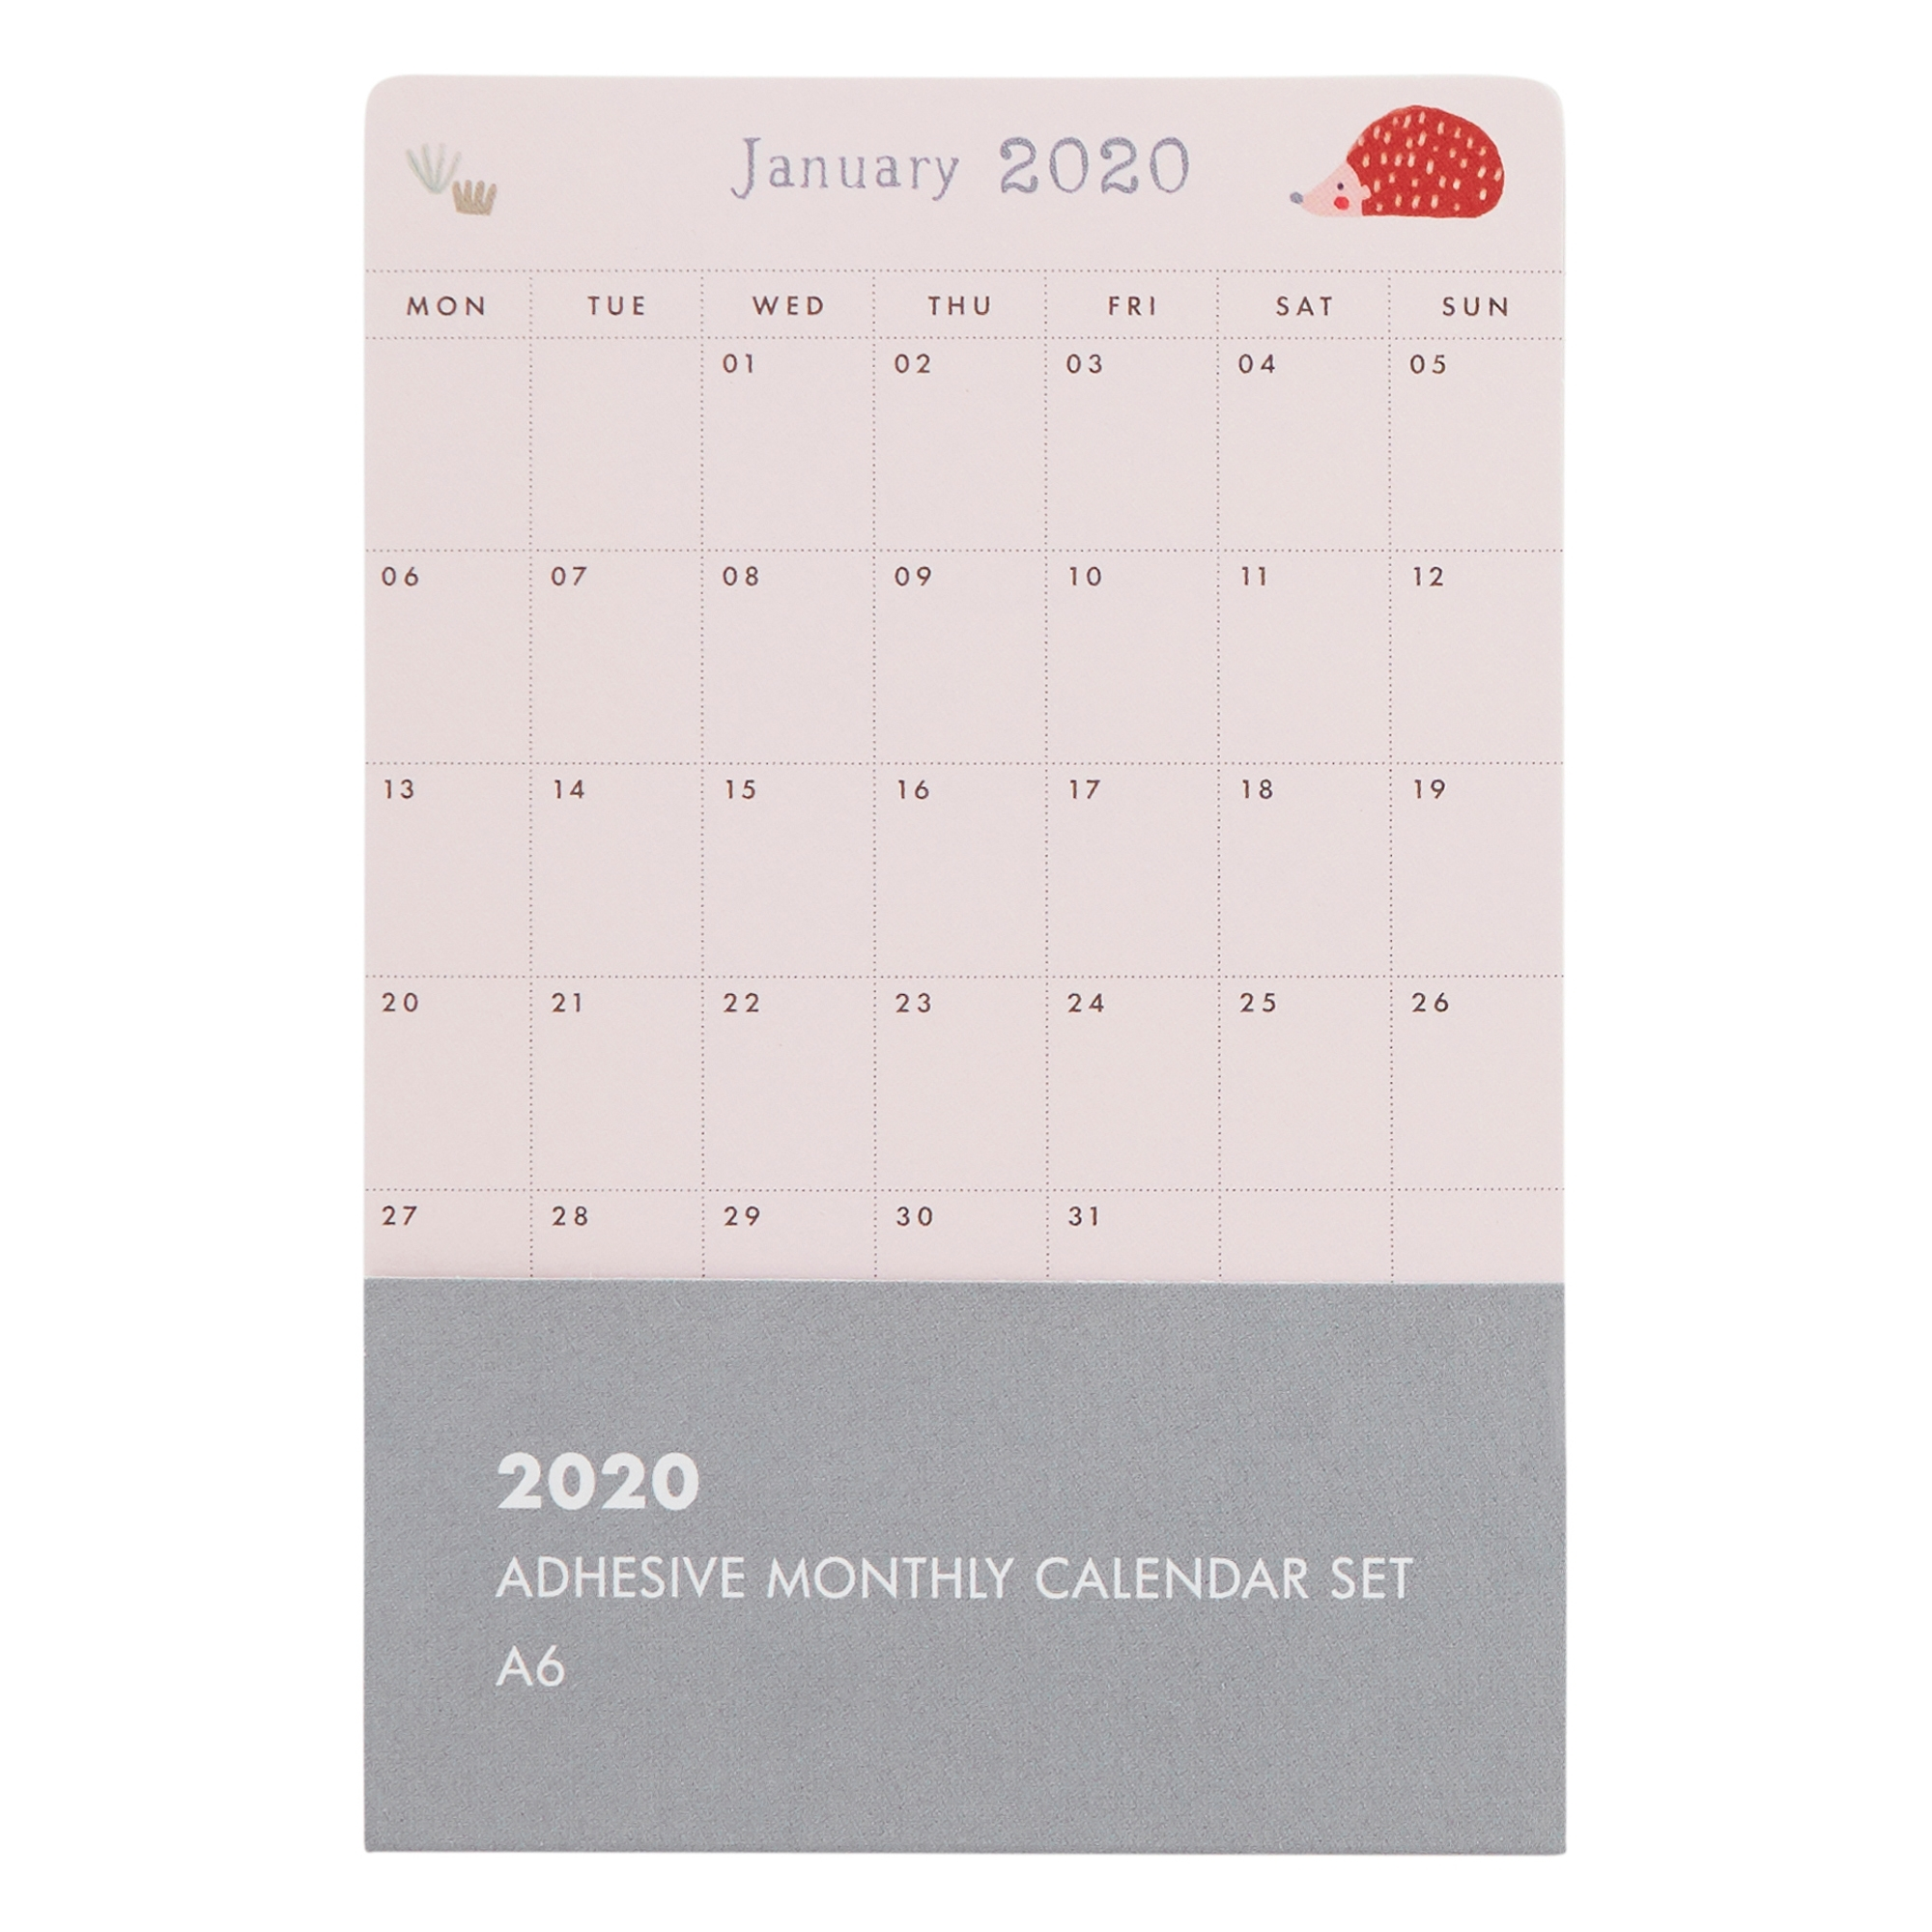 2020 Sweet Adhesive Monthly Calendar Set: Woodland